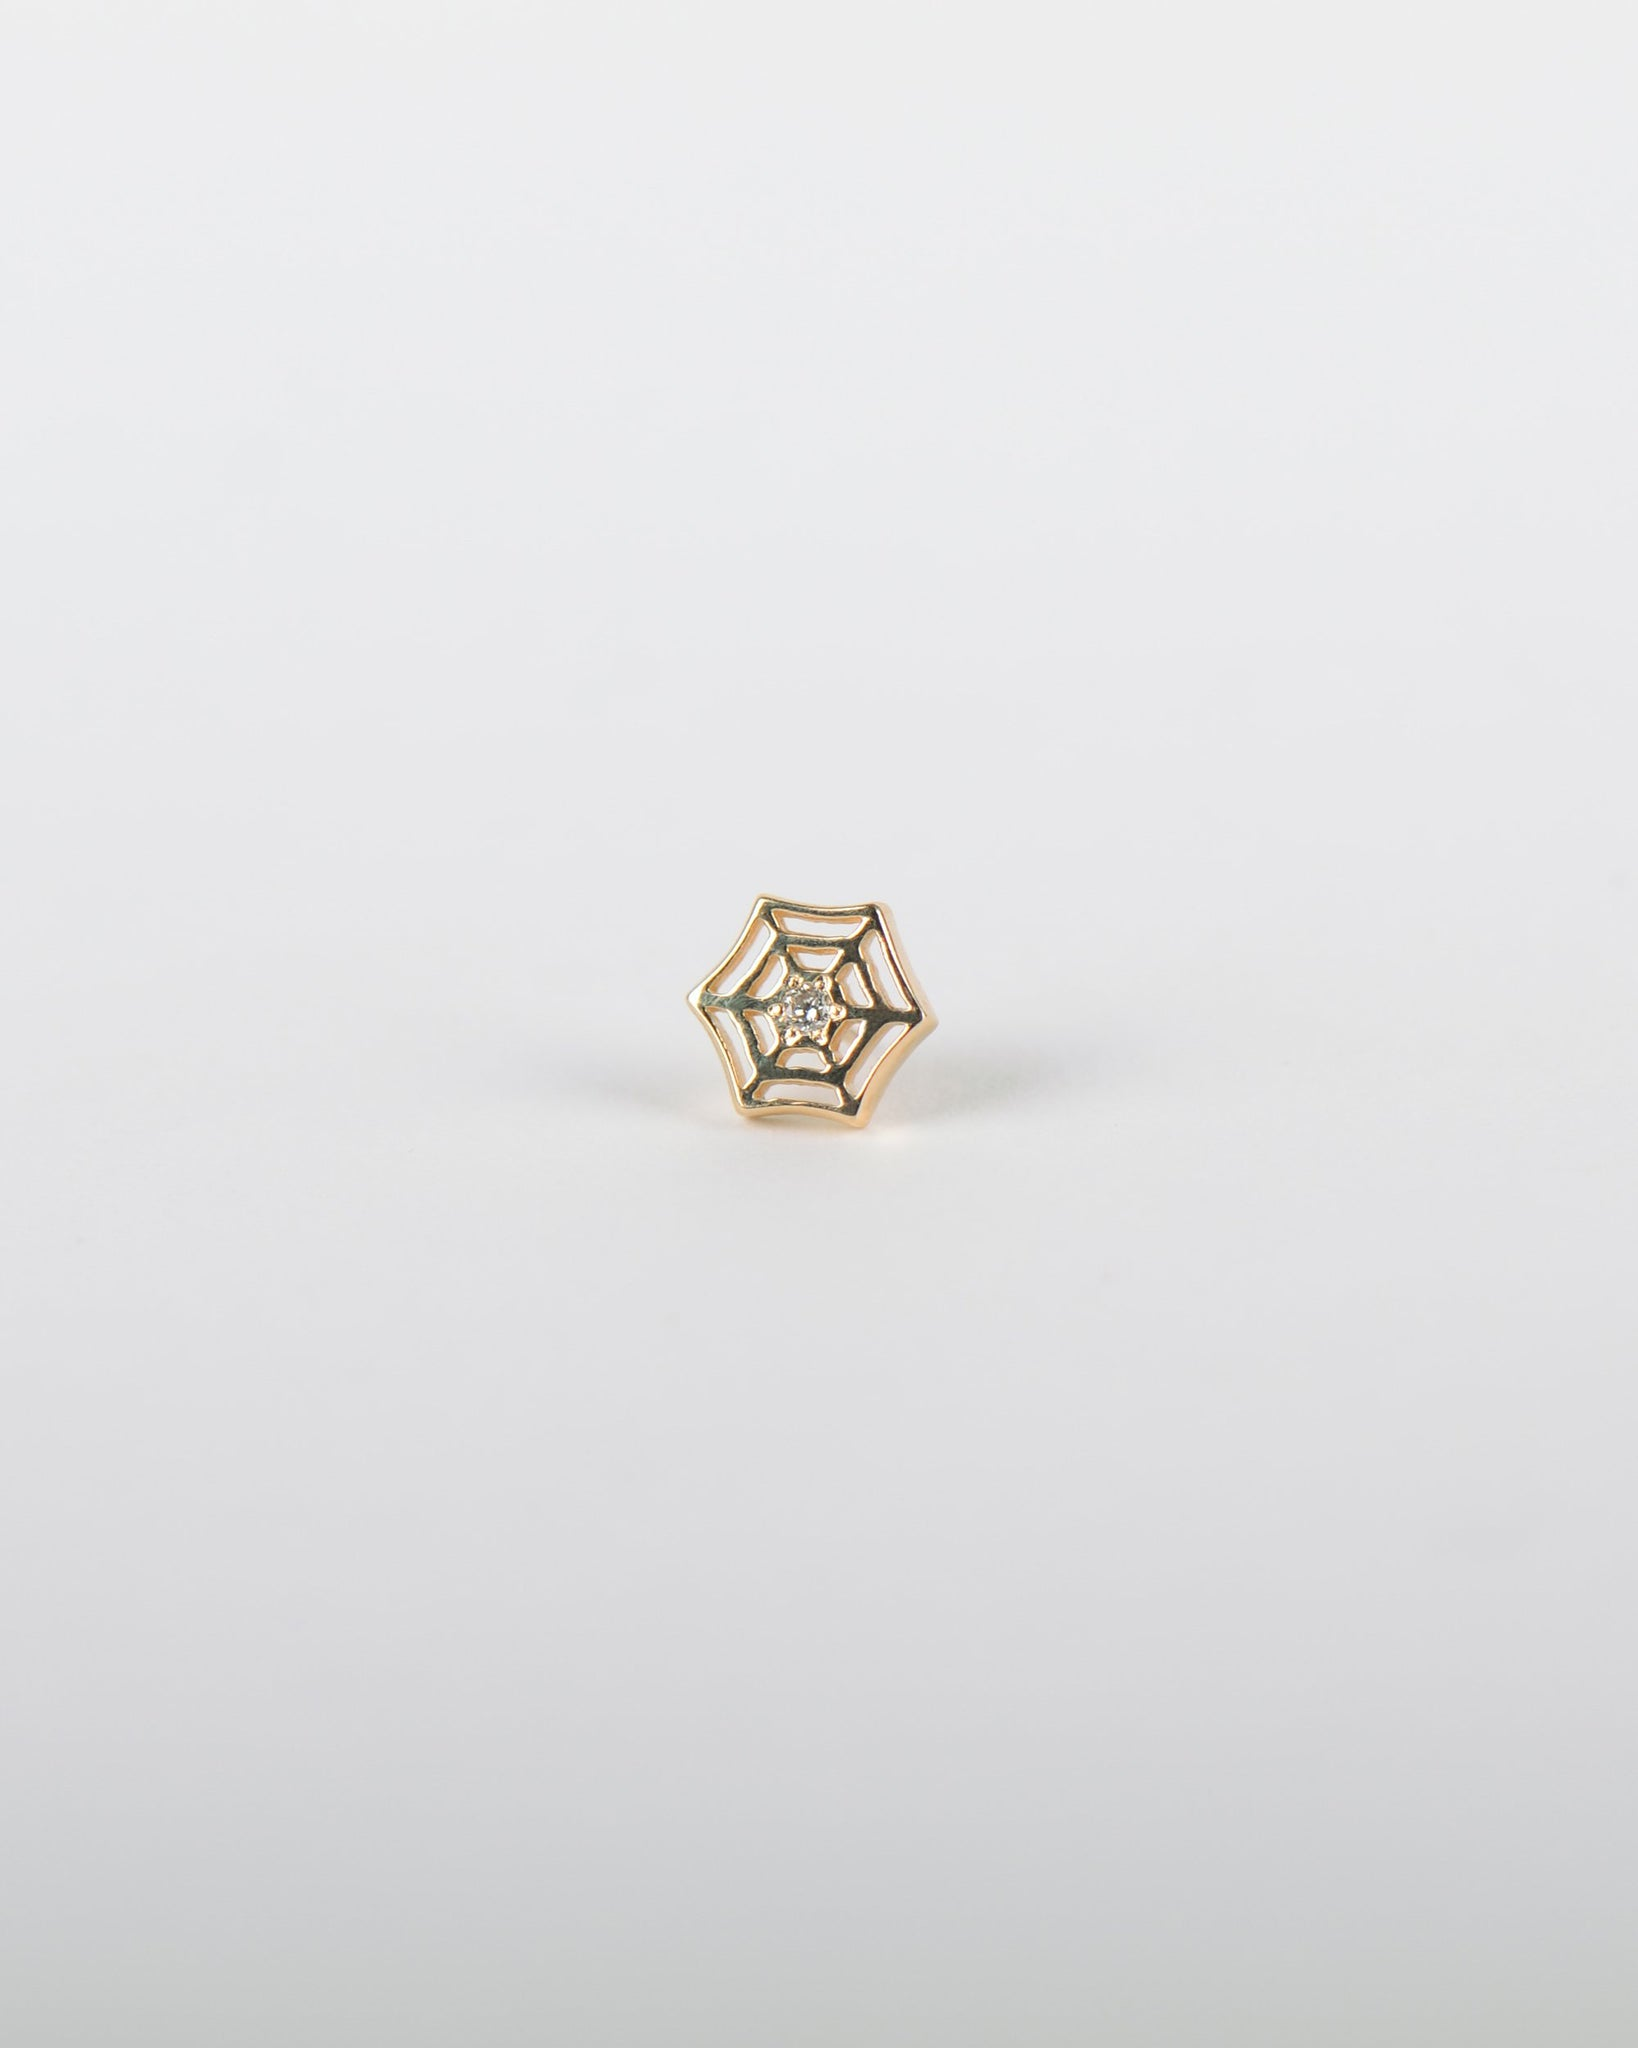 Spider Web Earring in Yellow Gold with a Diamond